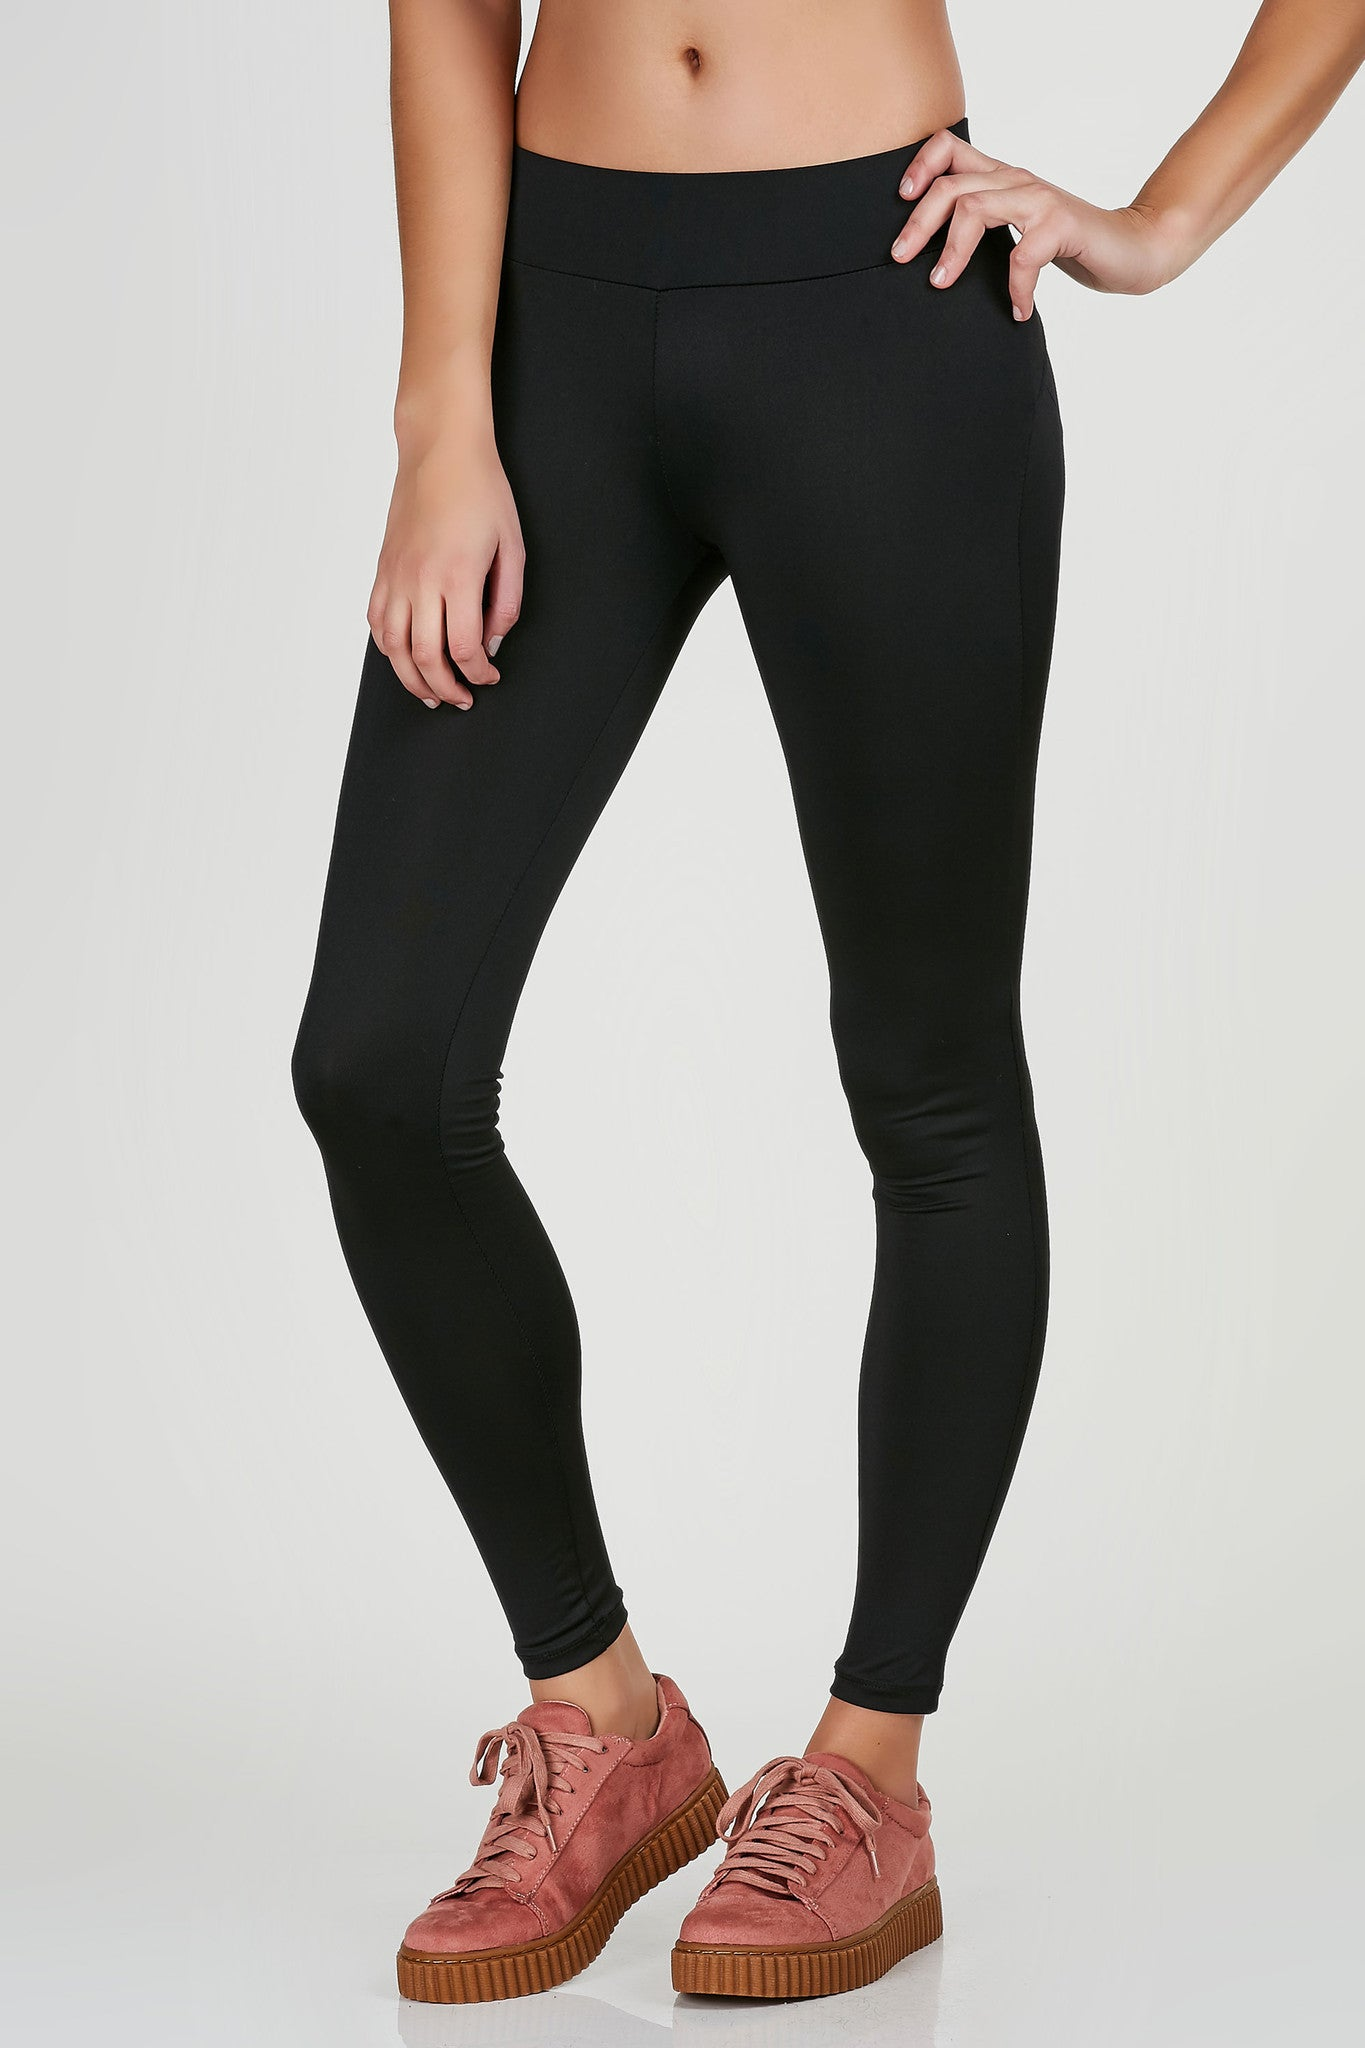 Mid rise active leggings with stretchy fit. Arched seamwork at back for a push up effect.